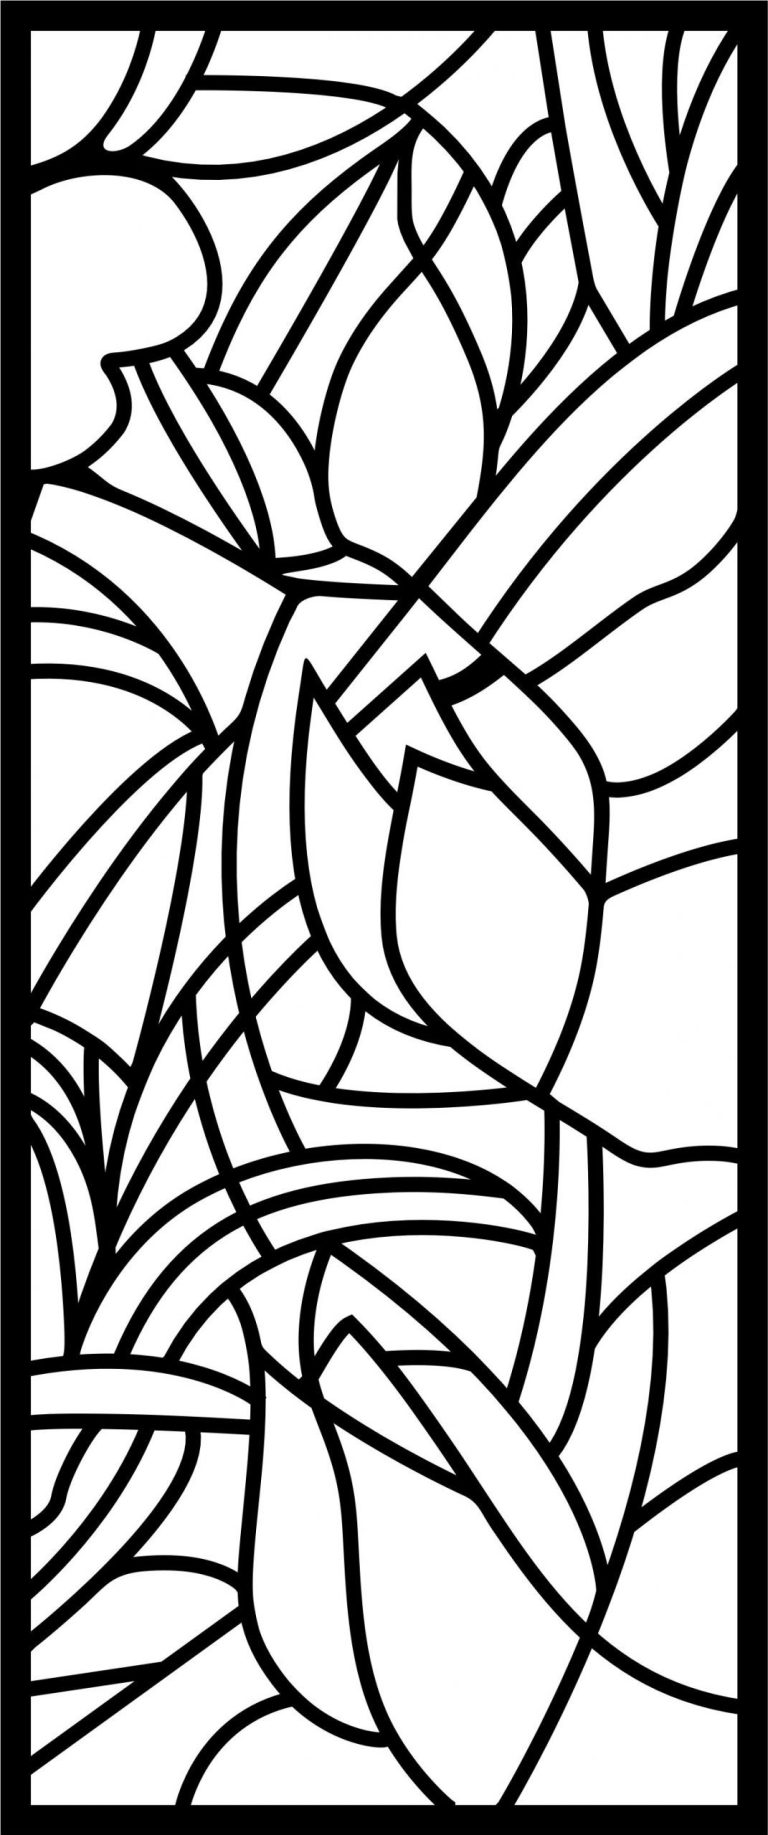 Decorative Screen Patterns For Laser Cutting 5 Free DXF File